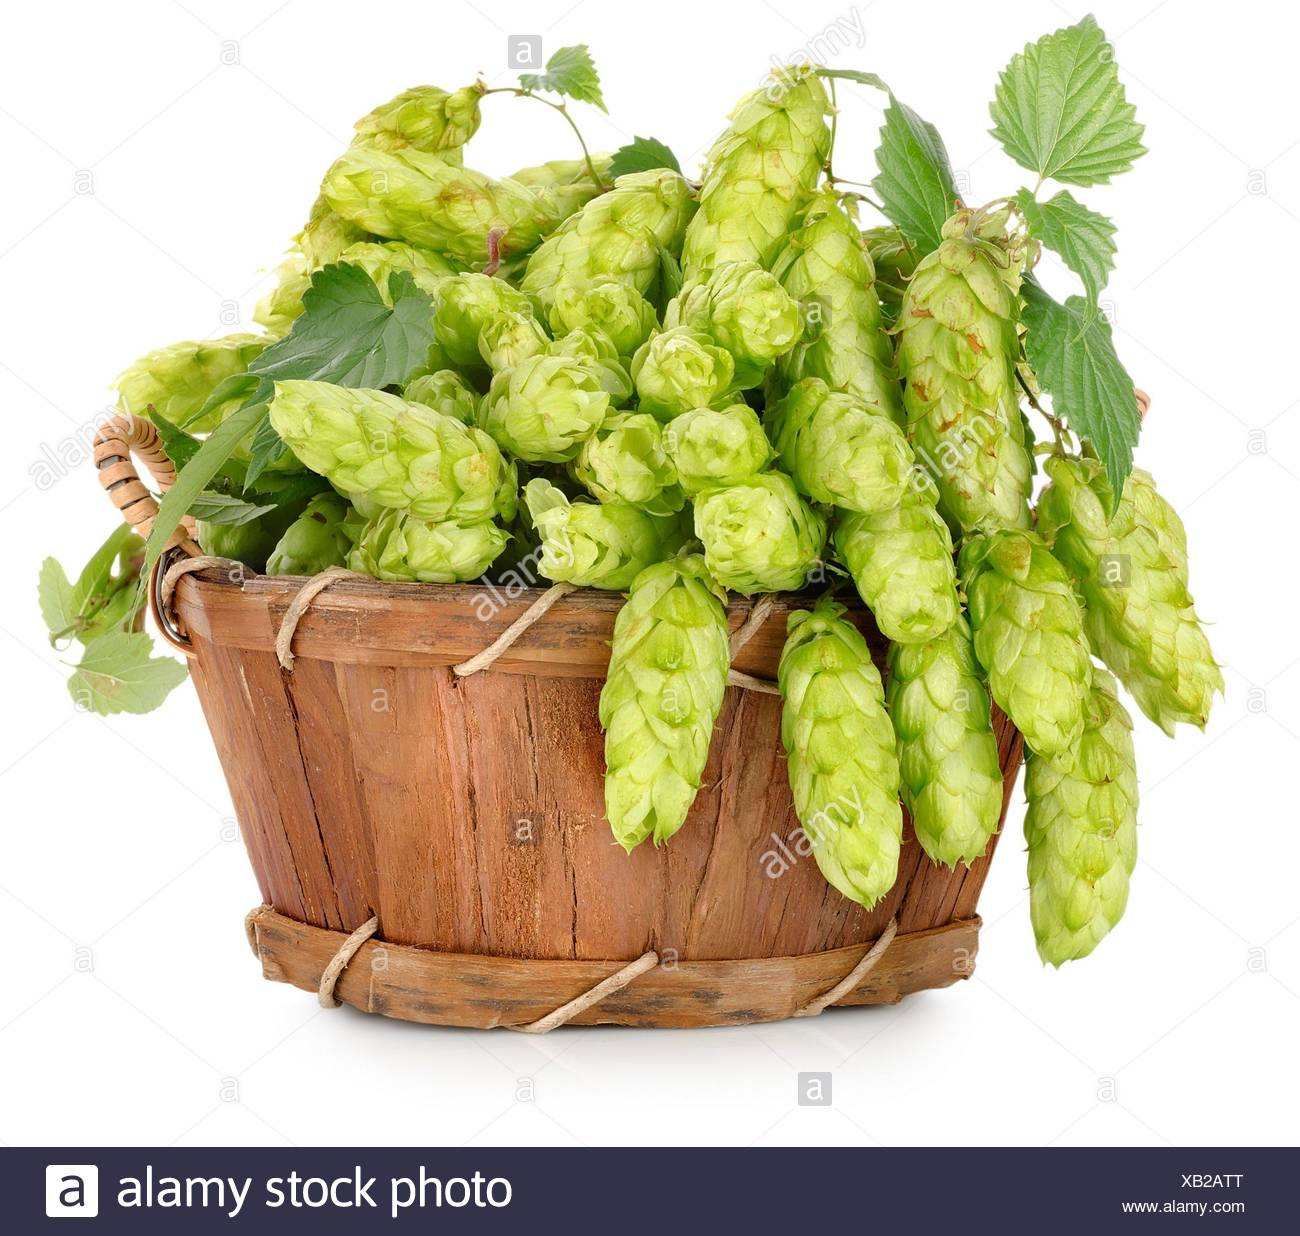 Green hops in a wooden basket isolated on white. - Stock Image